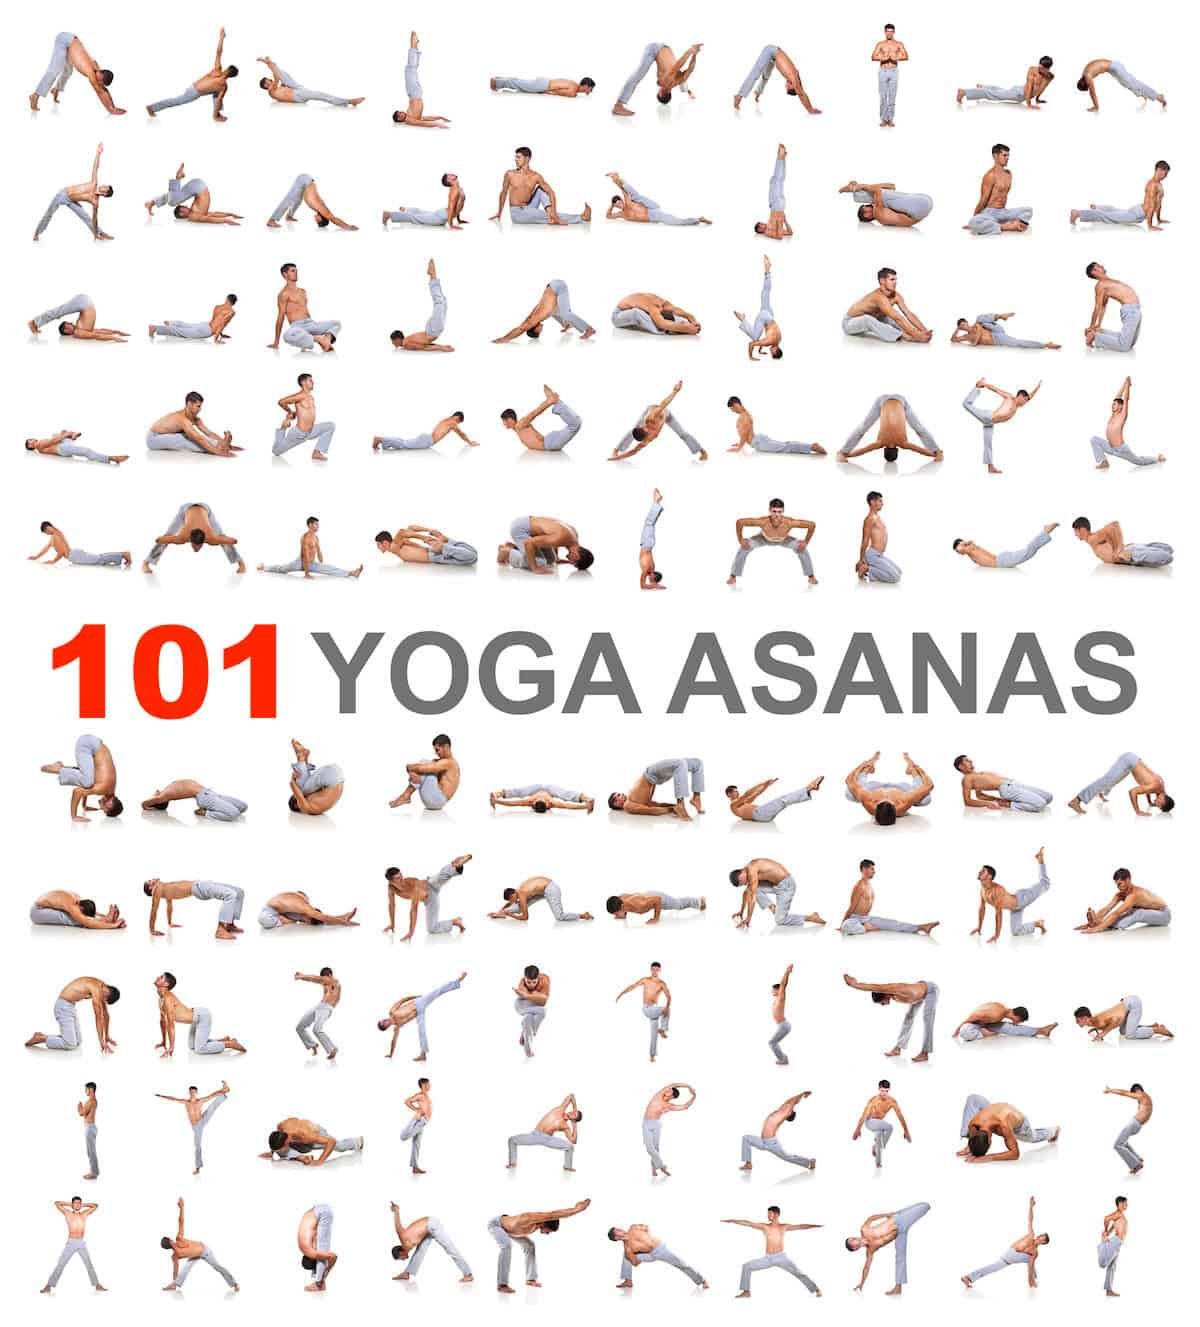 101 Popular Yoga Poses For Beginners Intermediate And Advanced Yogis